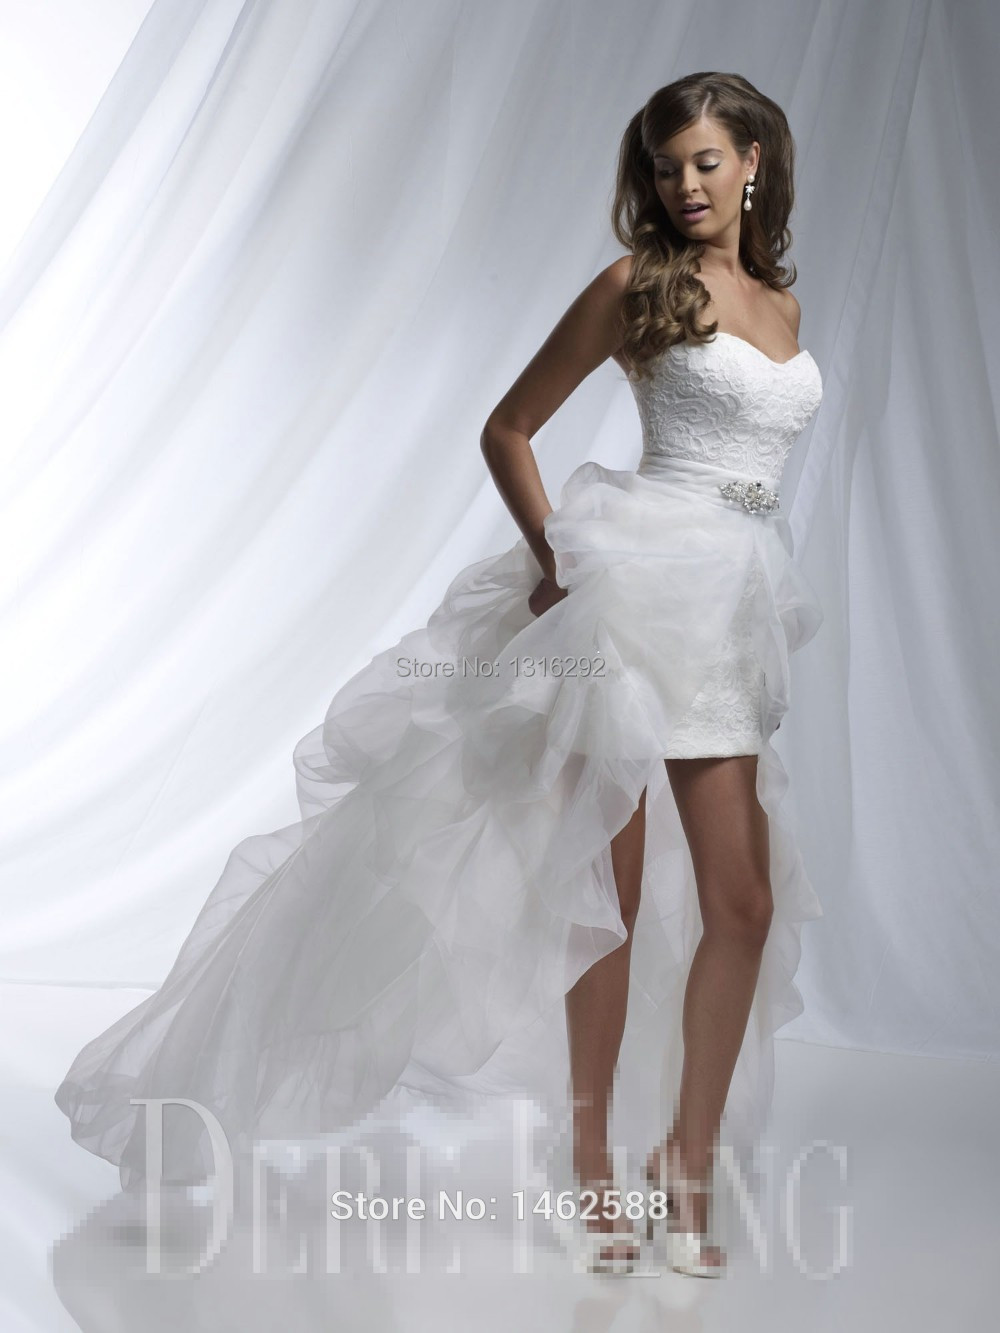 Elegant Lace Sweetheart White Organza Wedding Gowns Short Front Long In The B